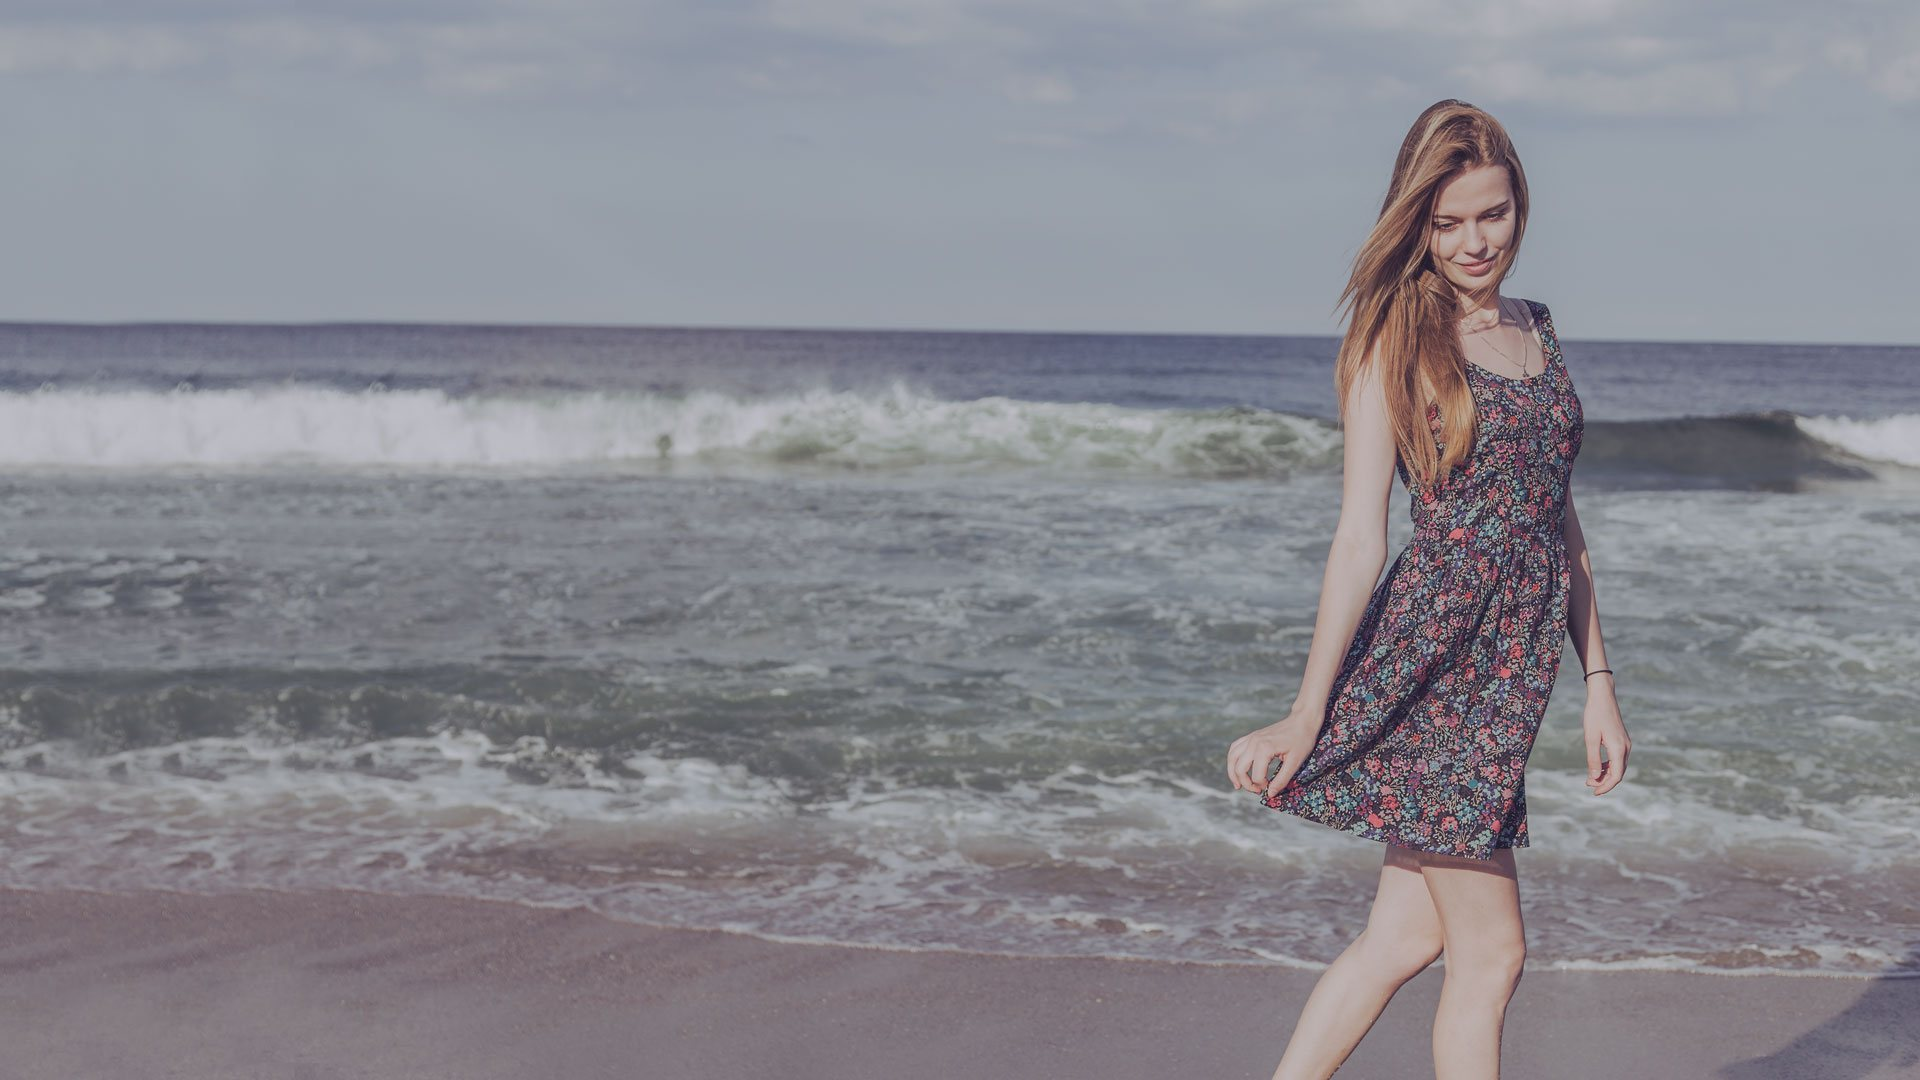 Woman walking on a beach with a summer dress, small waves in the background